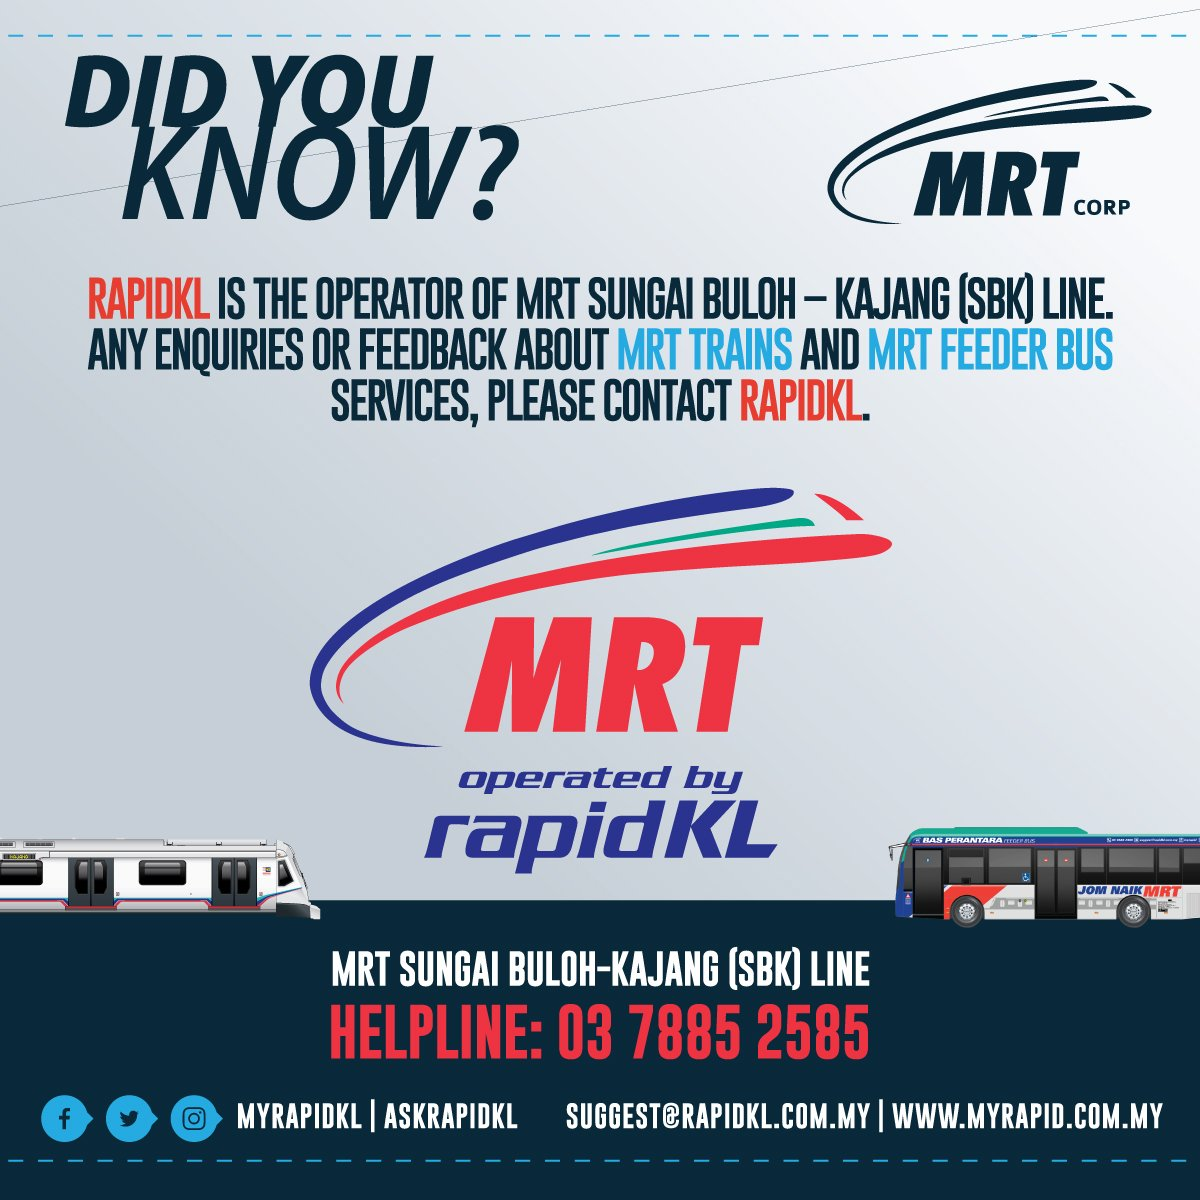 contact mrt station rapidkl